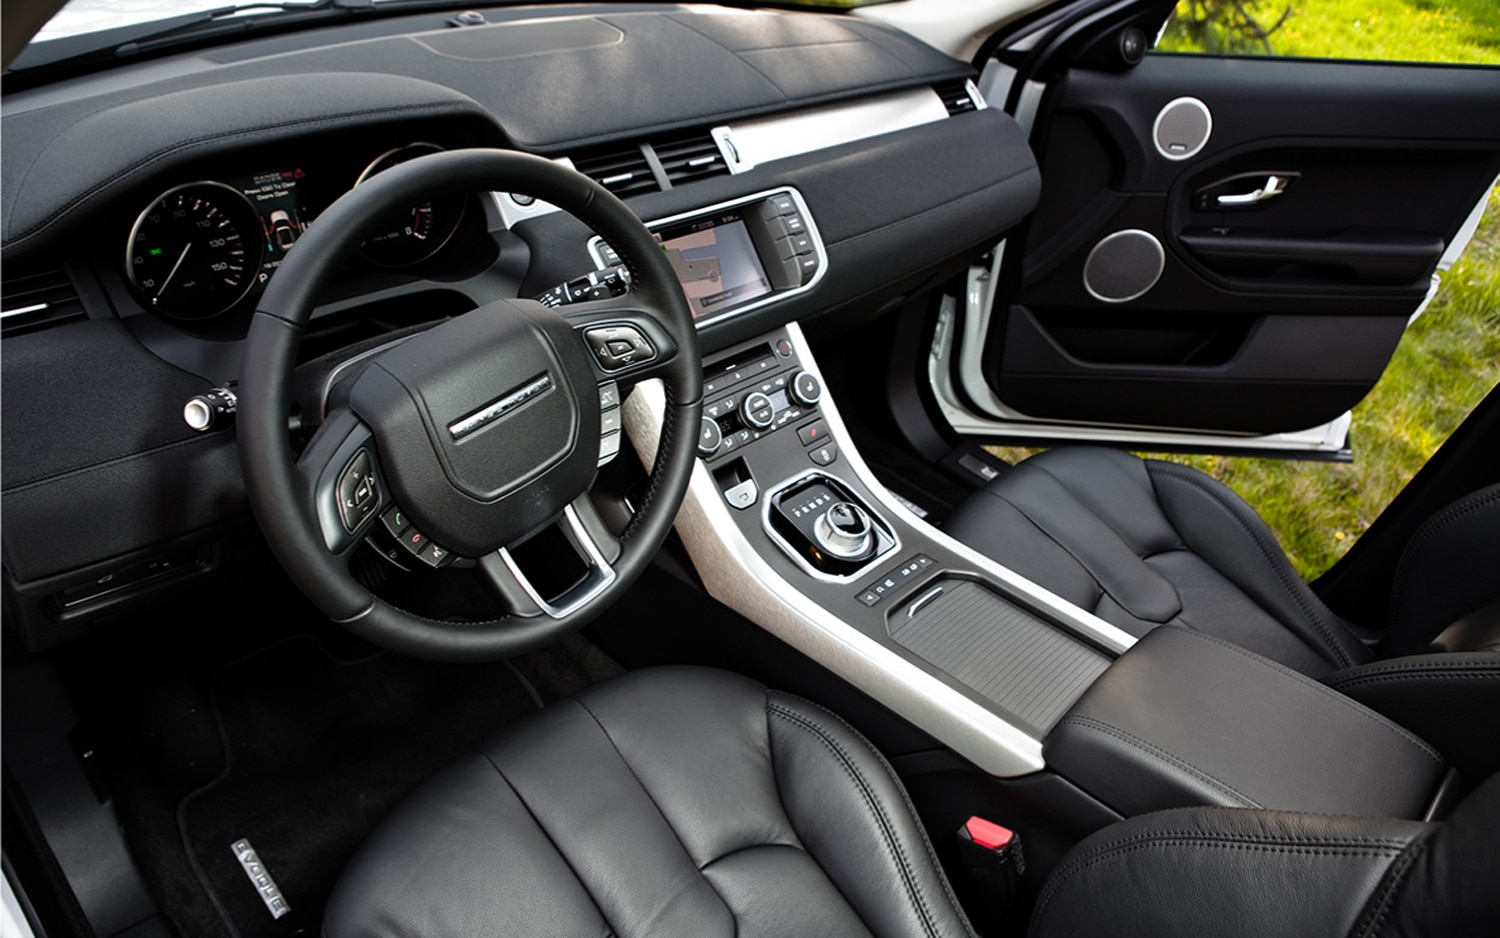 range rover evoque 4 door interior images galleries with a bite. Black Bedroom Furniture Sets. Home Design Ideas